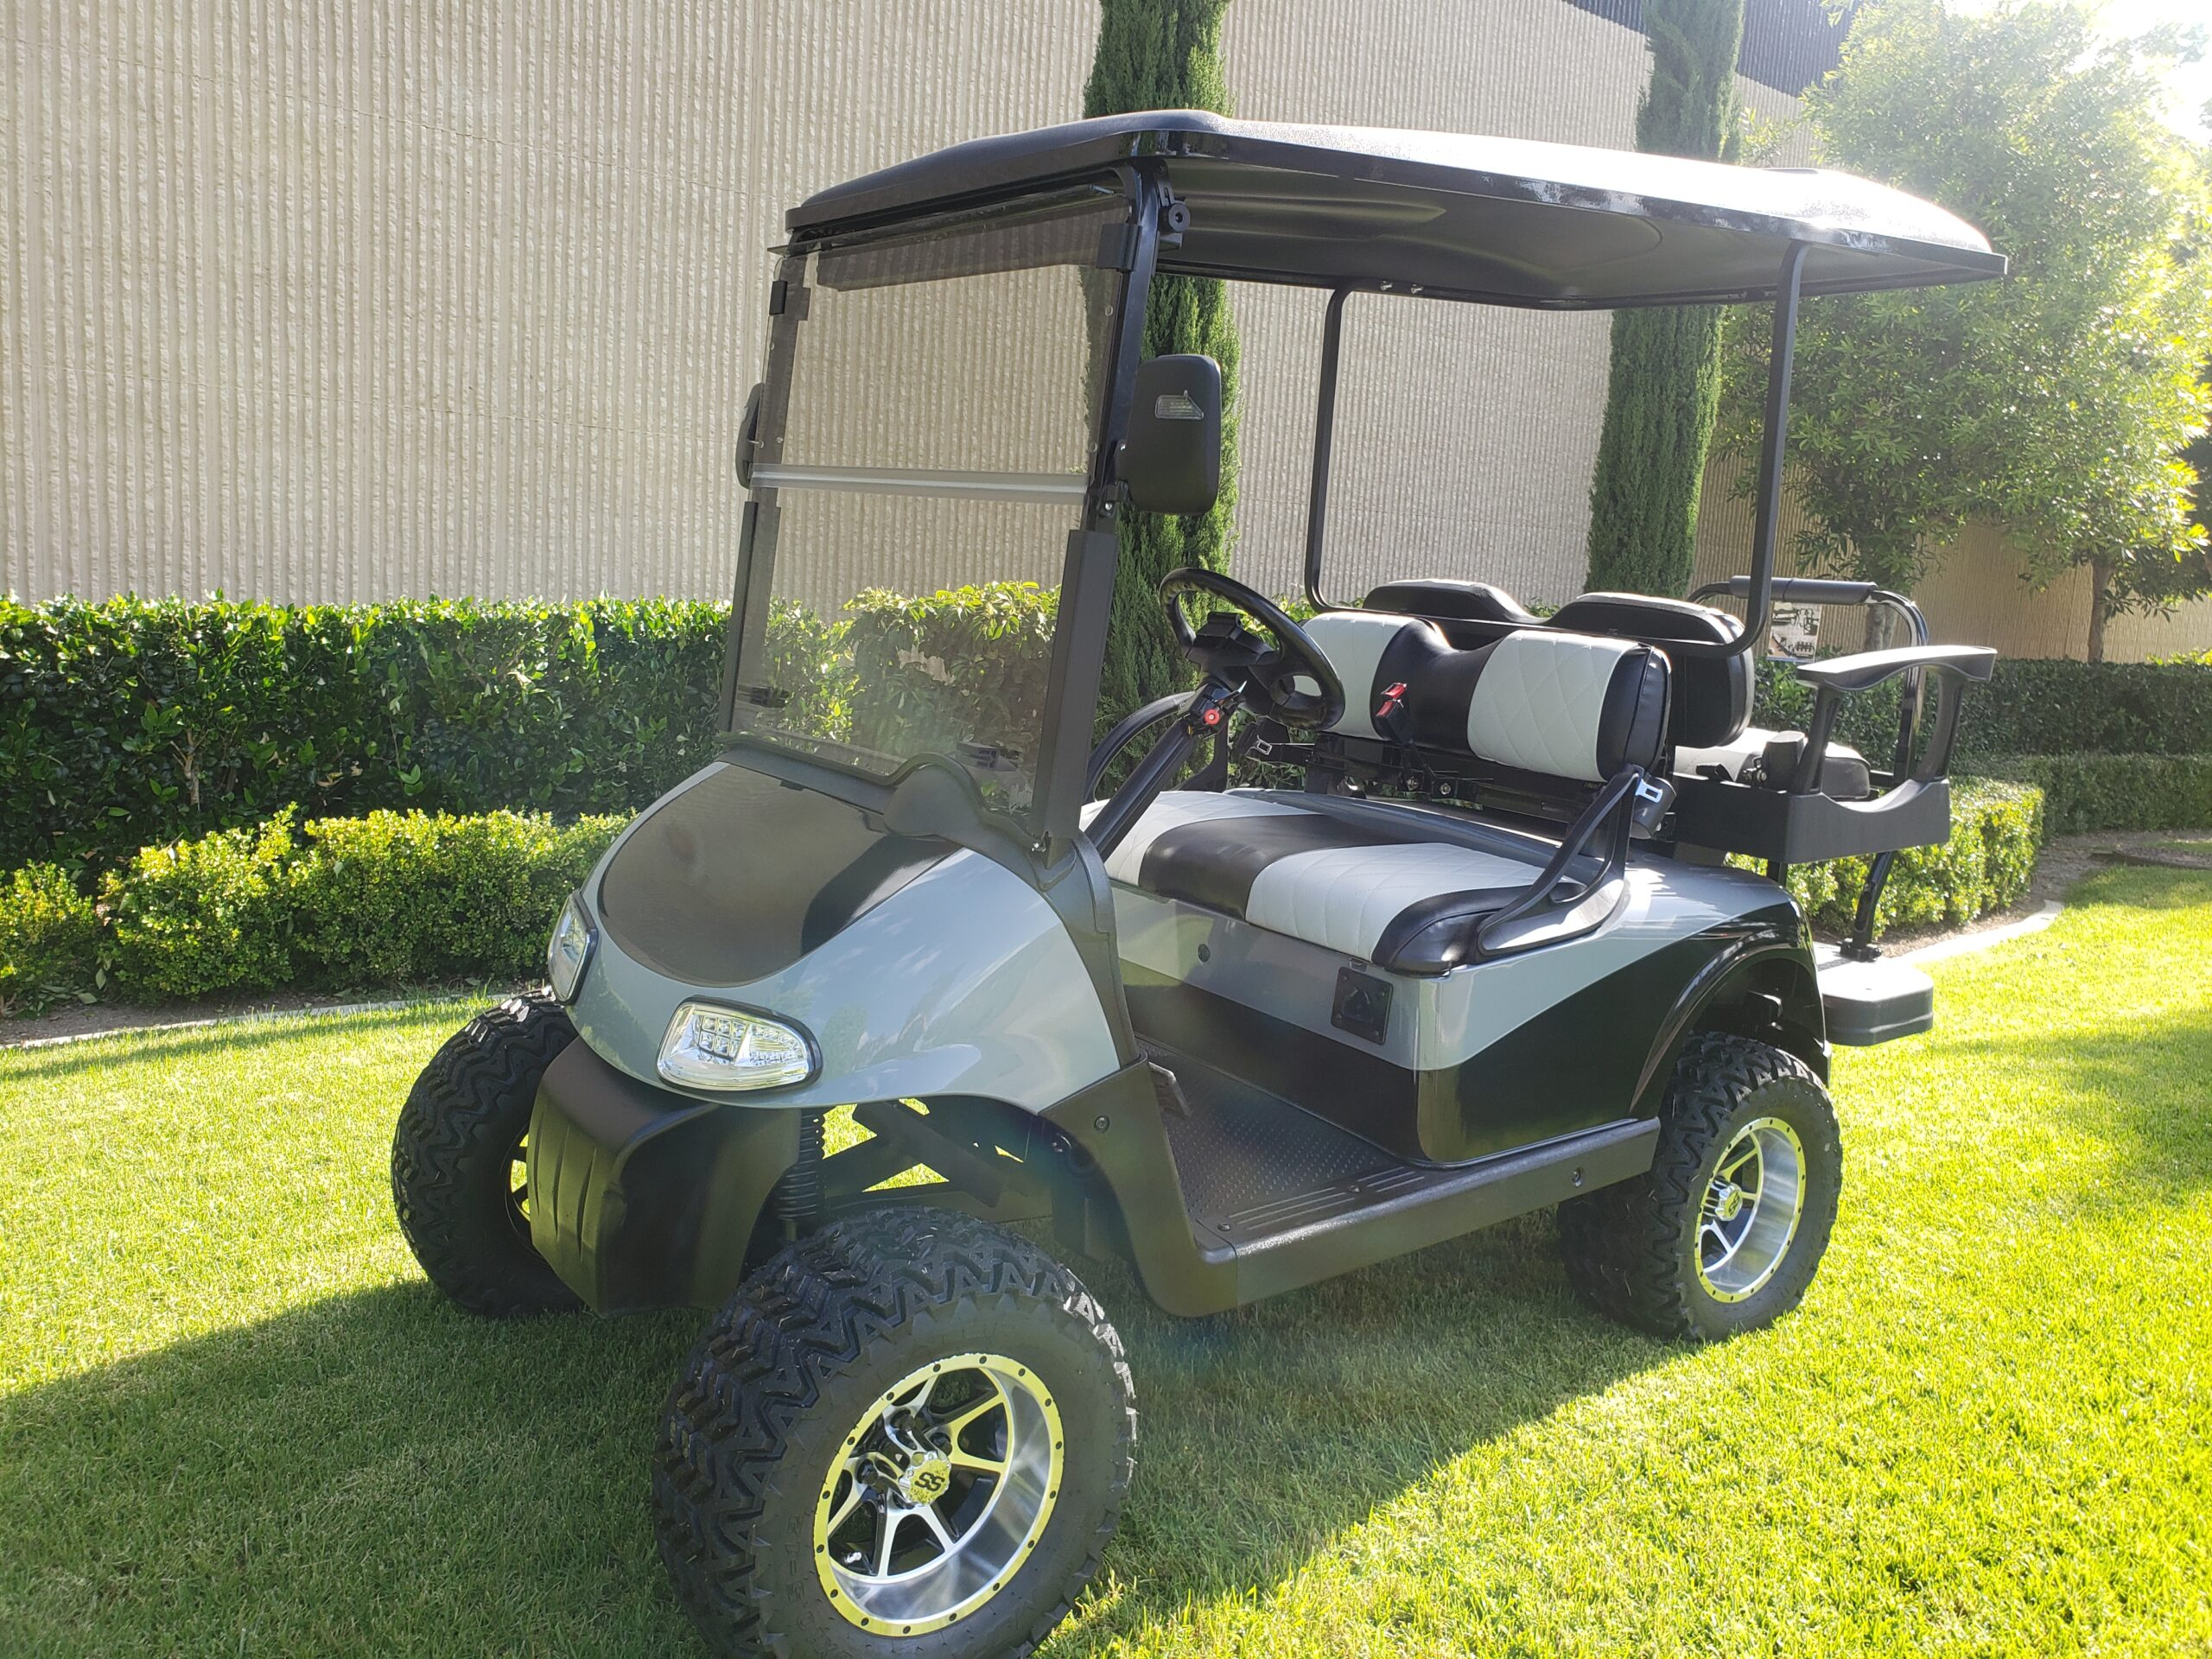 Ezgo RXV 4 Passenger Golf Cart